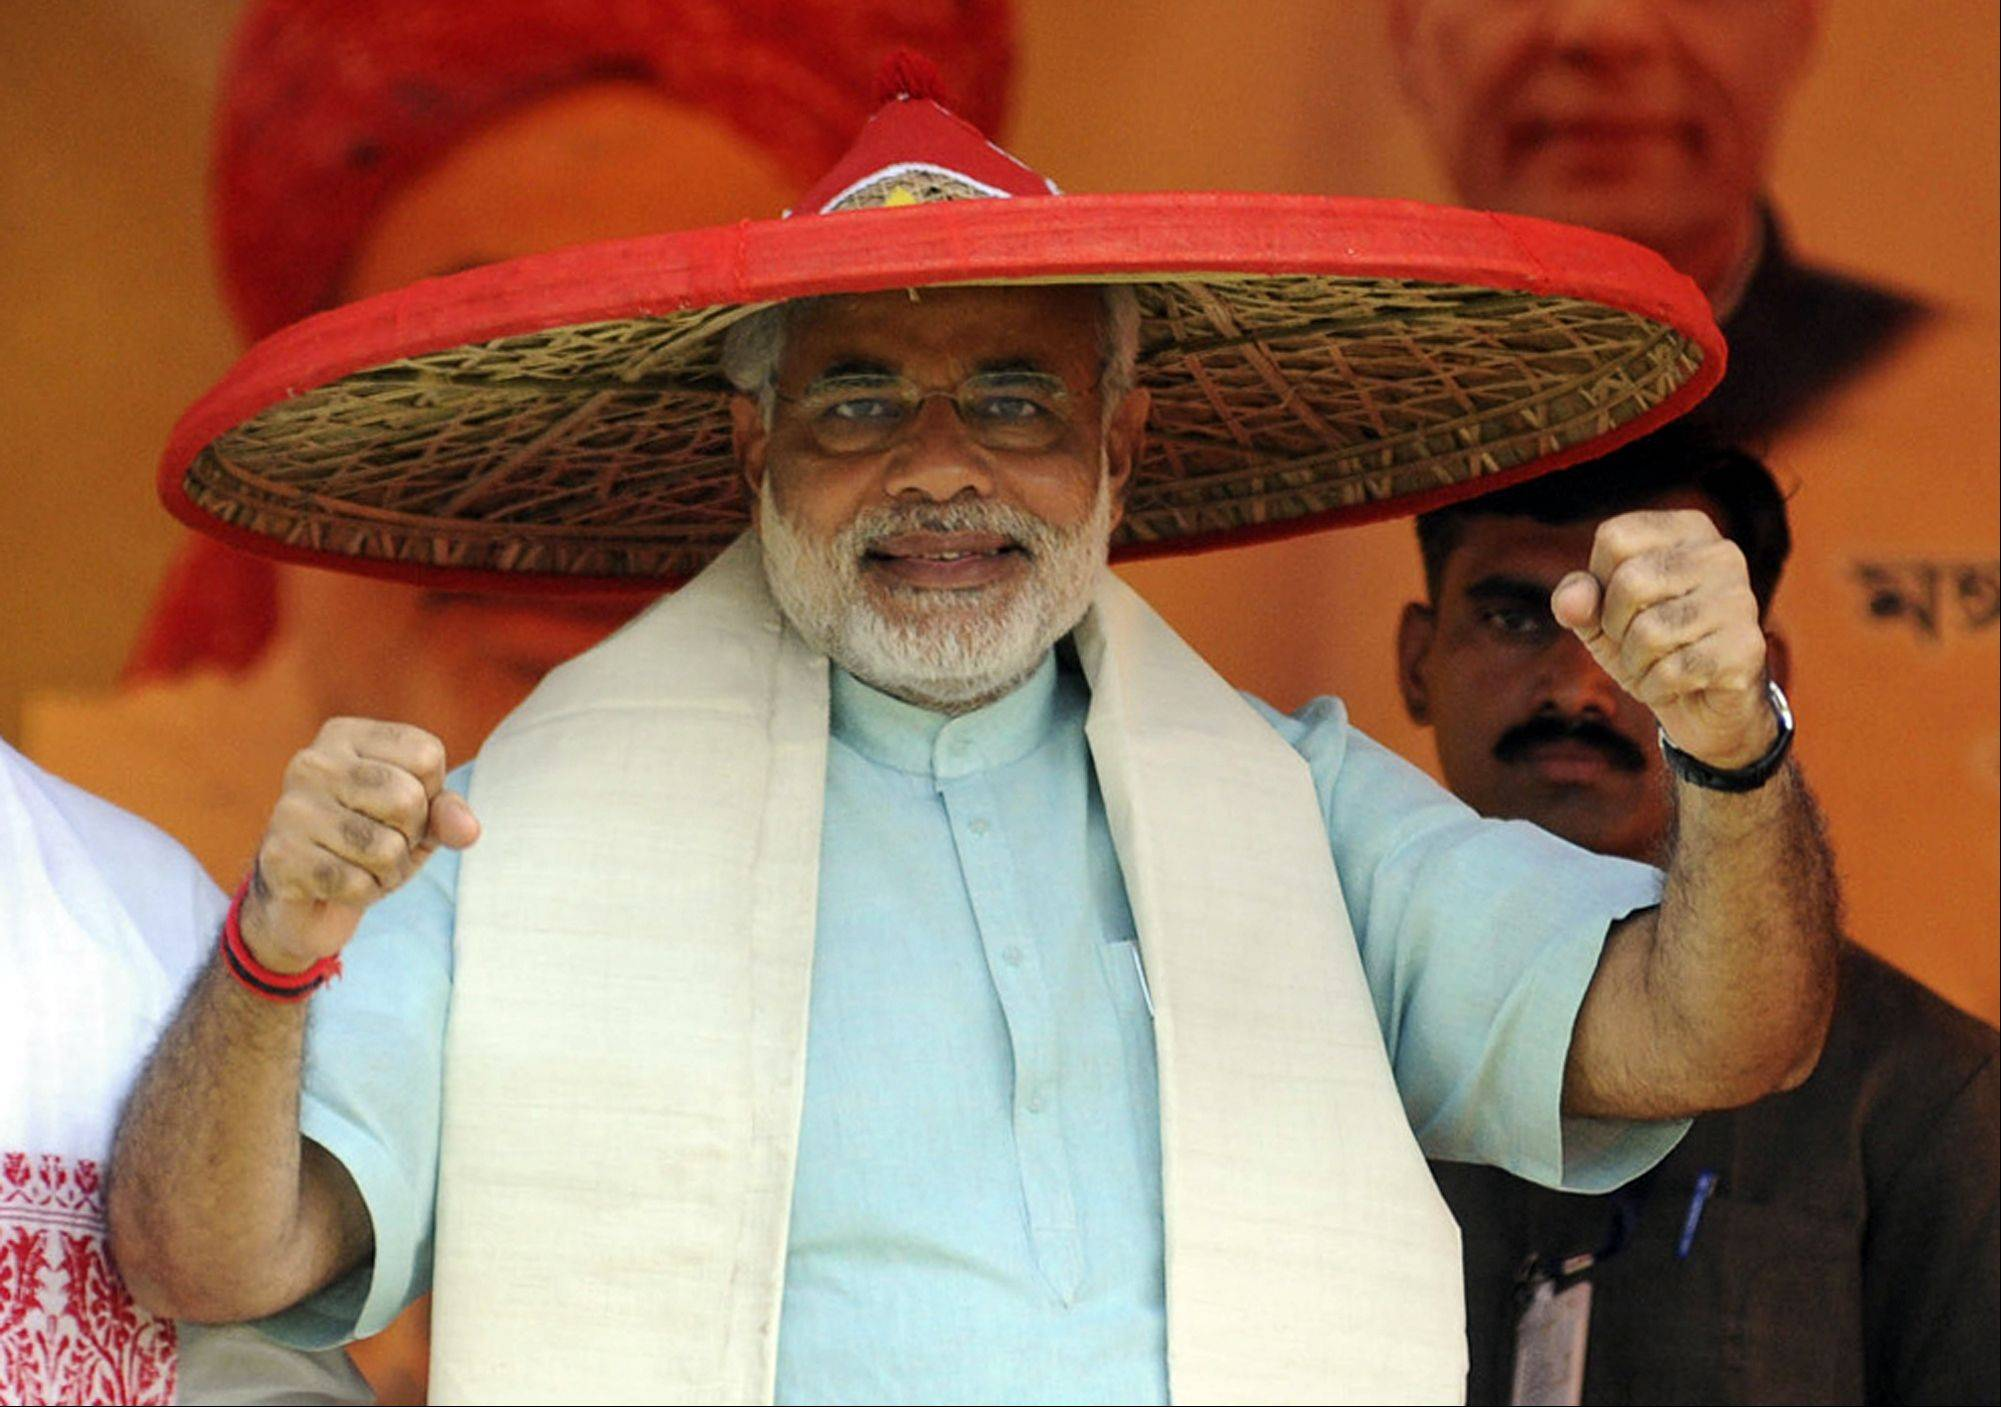 Gujarat Chief Minister Narendra Modi wears a traditional hat during a rally in 2009 in India.